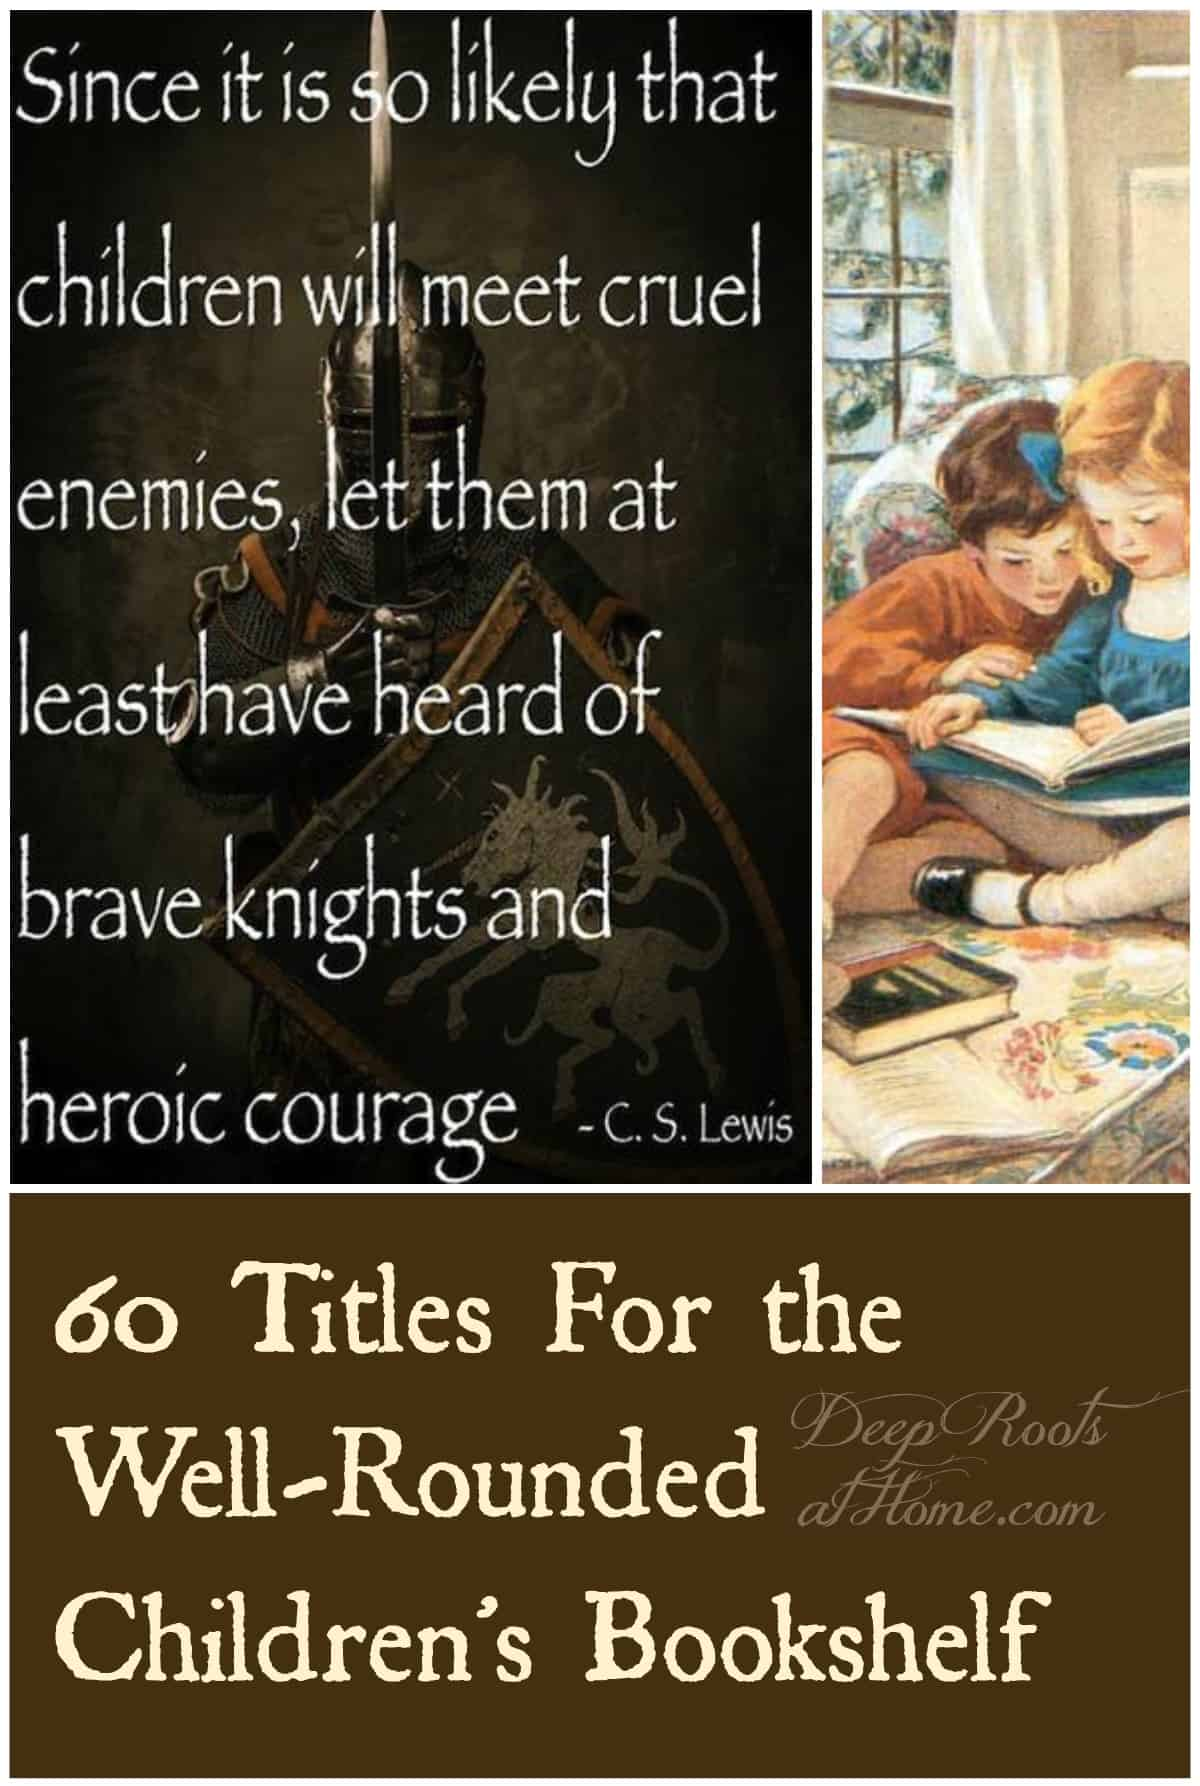 60 Titles For the Well-Rounded Children's Bookshelf. Children reading and CS Lewis quote in a Pinterest image.